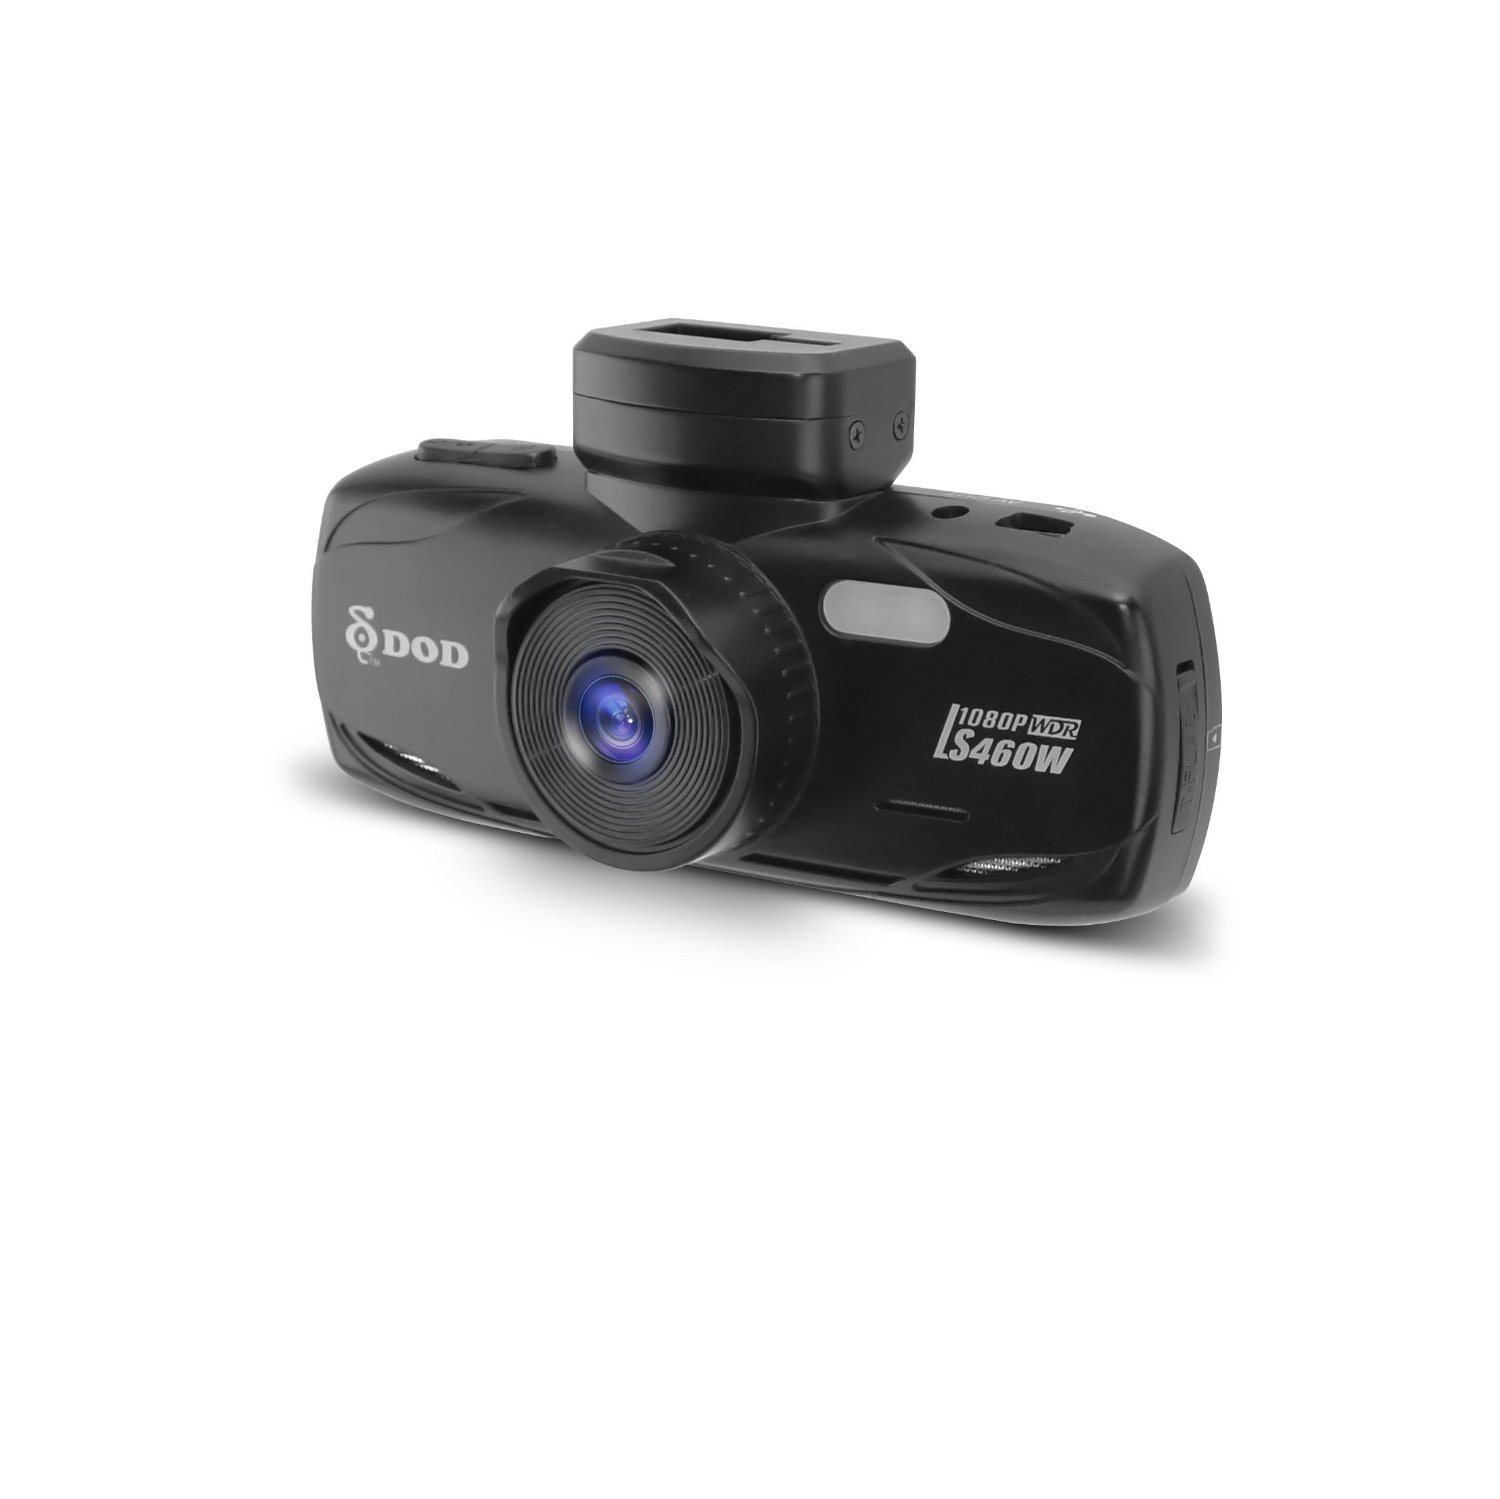 DOD HD 1080P Low Light Wide Angle Dash Camera GPS Google Maps